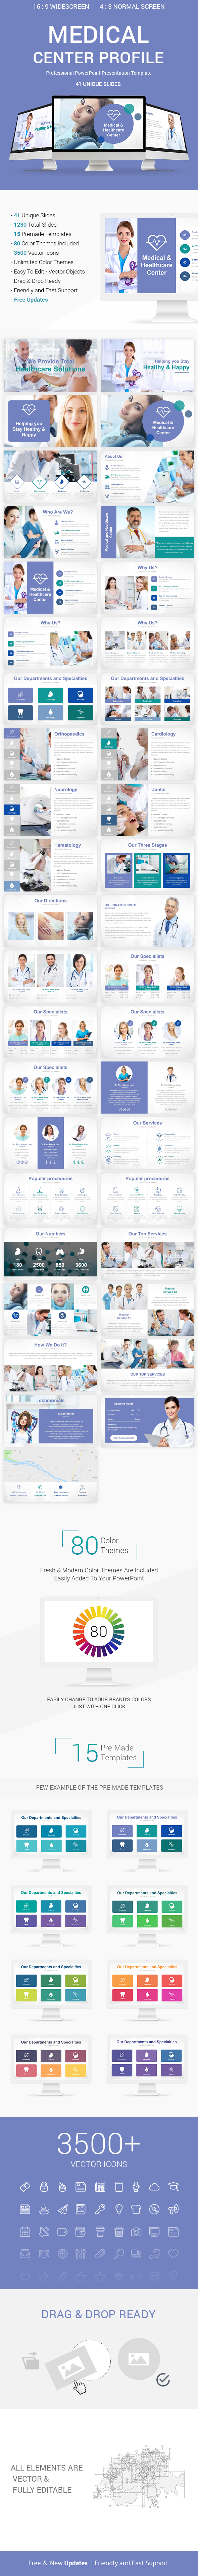 Medical Center Profile PowerPoint Presentation Template Designs - Creative PowerPoint Templates